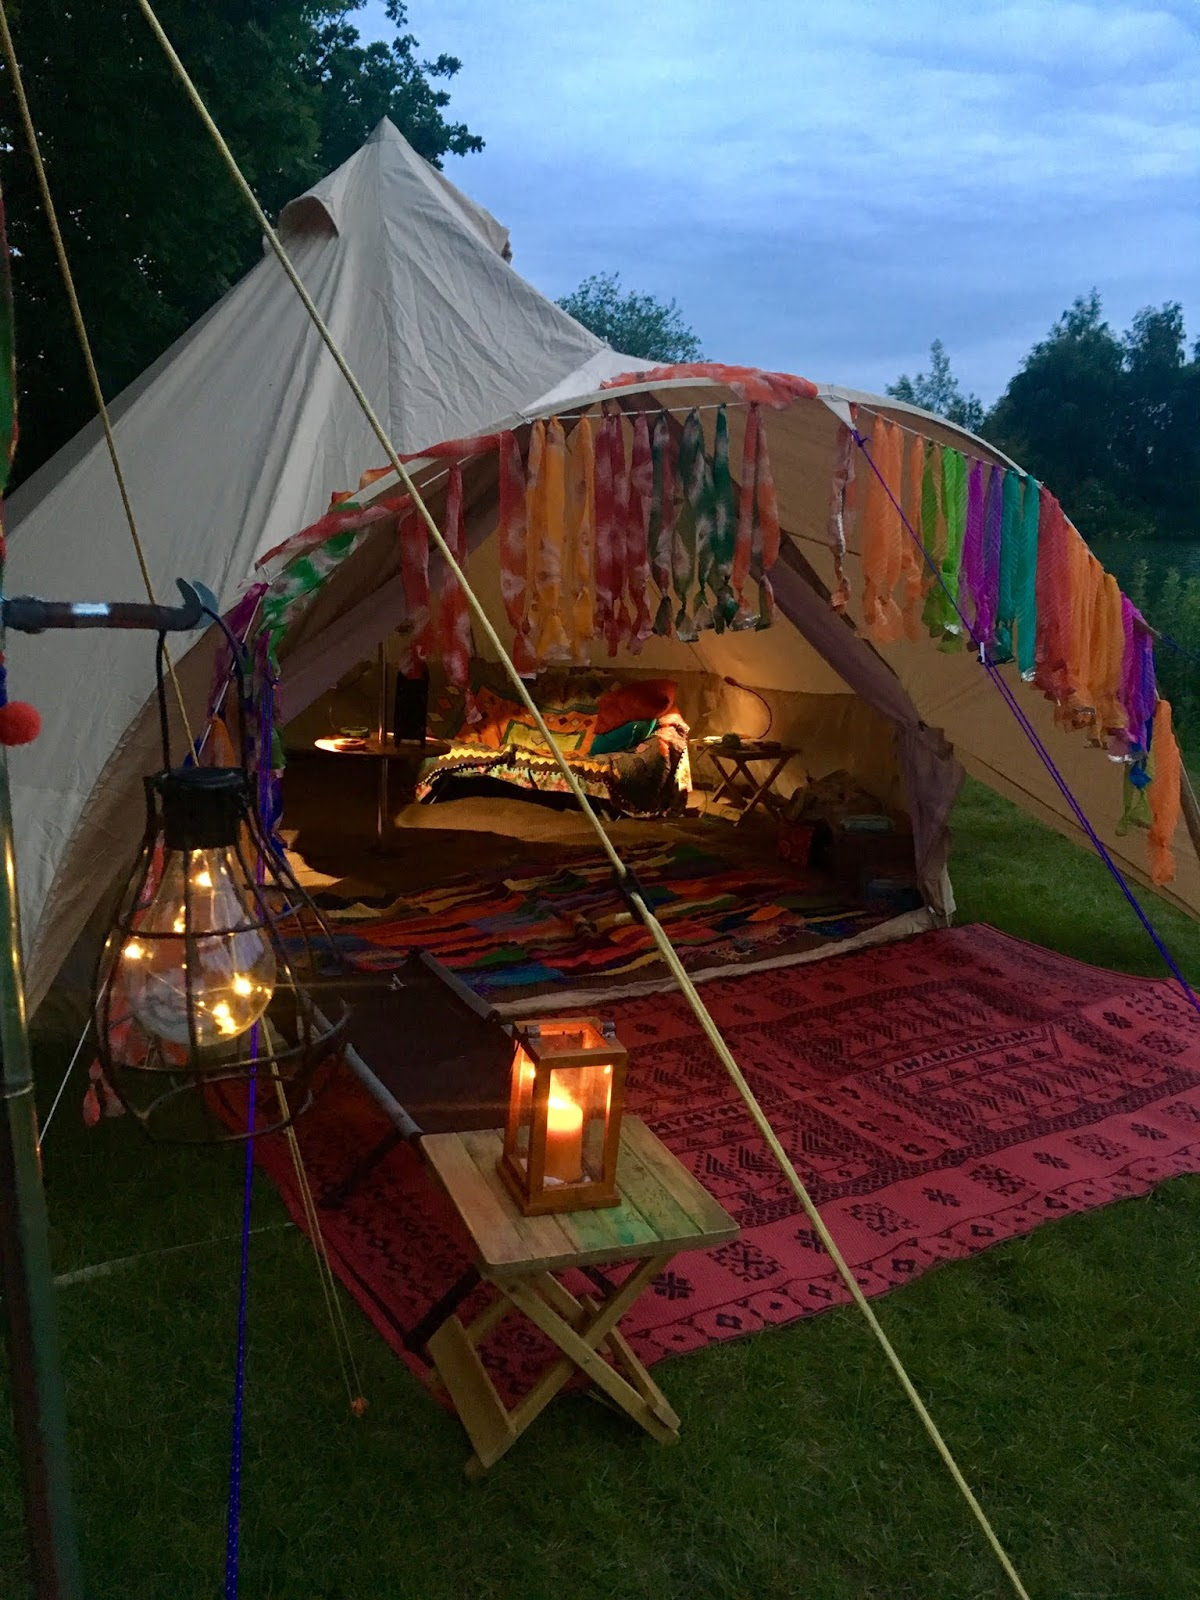 reputable site c3907 f3518 Bells & Labs: REVIEW: Star Bell Tent from Boutique Camping